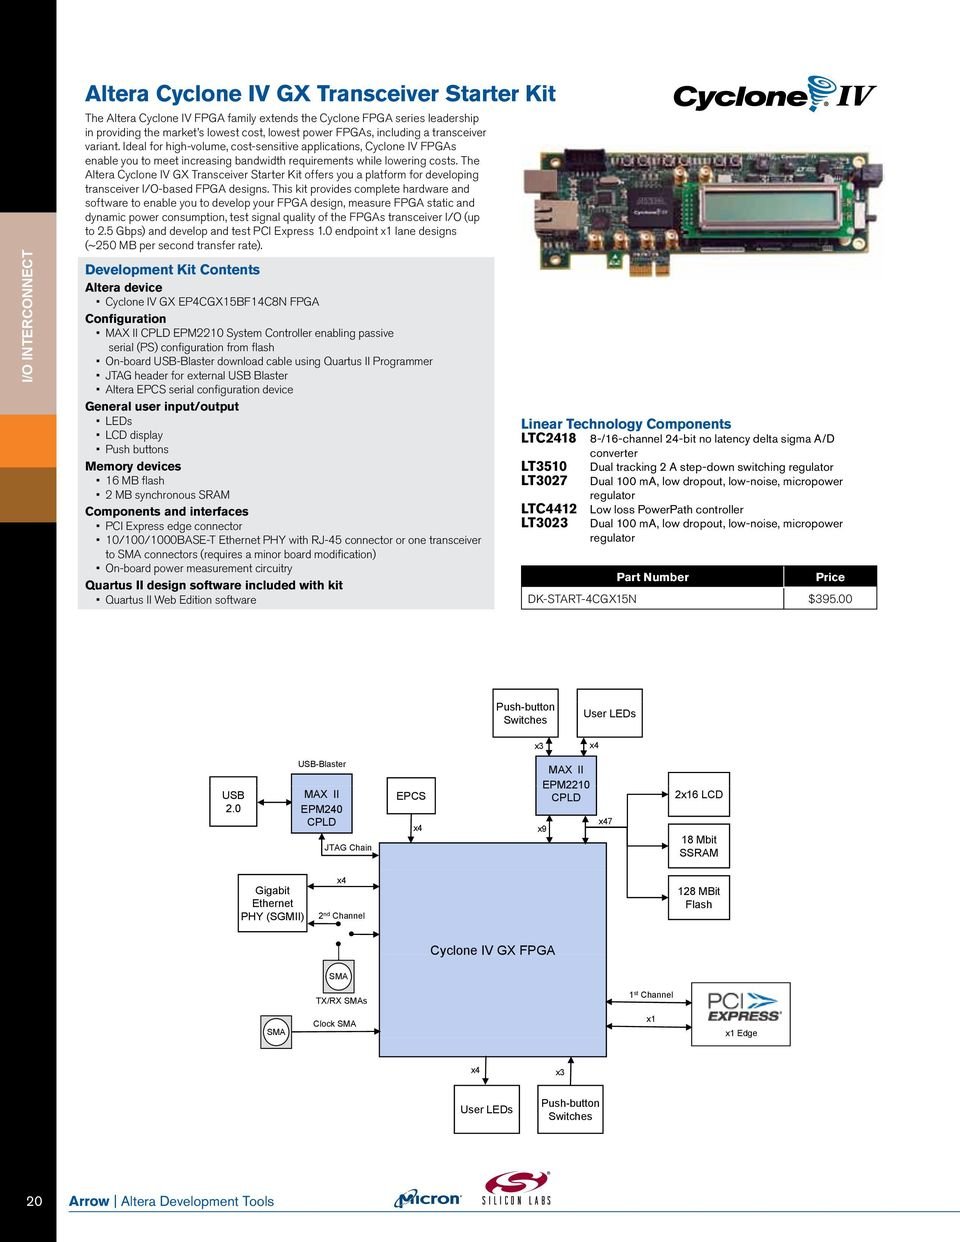 Altera Development Tools Pdf Circuit Diagram To Interface Buzzer With Fpga Cpld The Cyclone Iv Gx Transceiver Starter Kit Offers You A Platform For Developing I